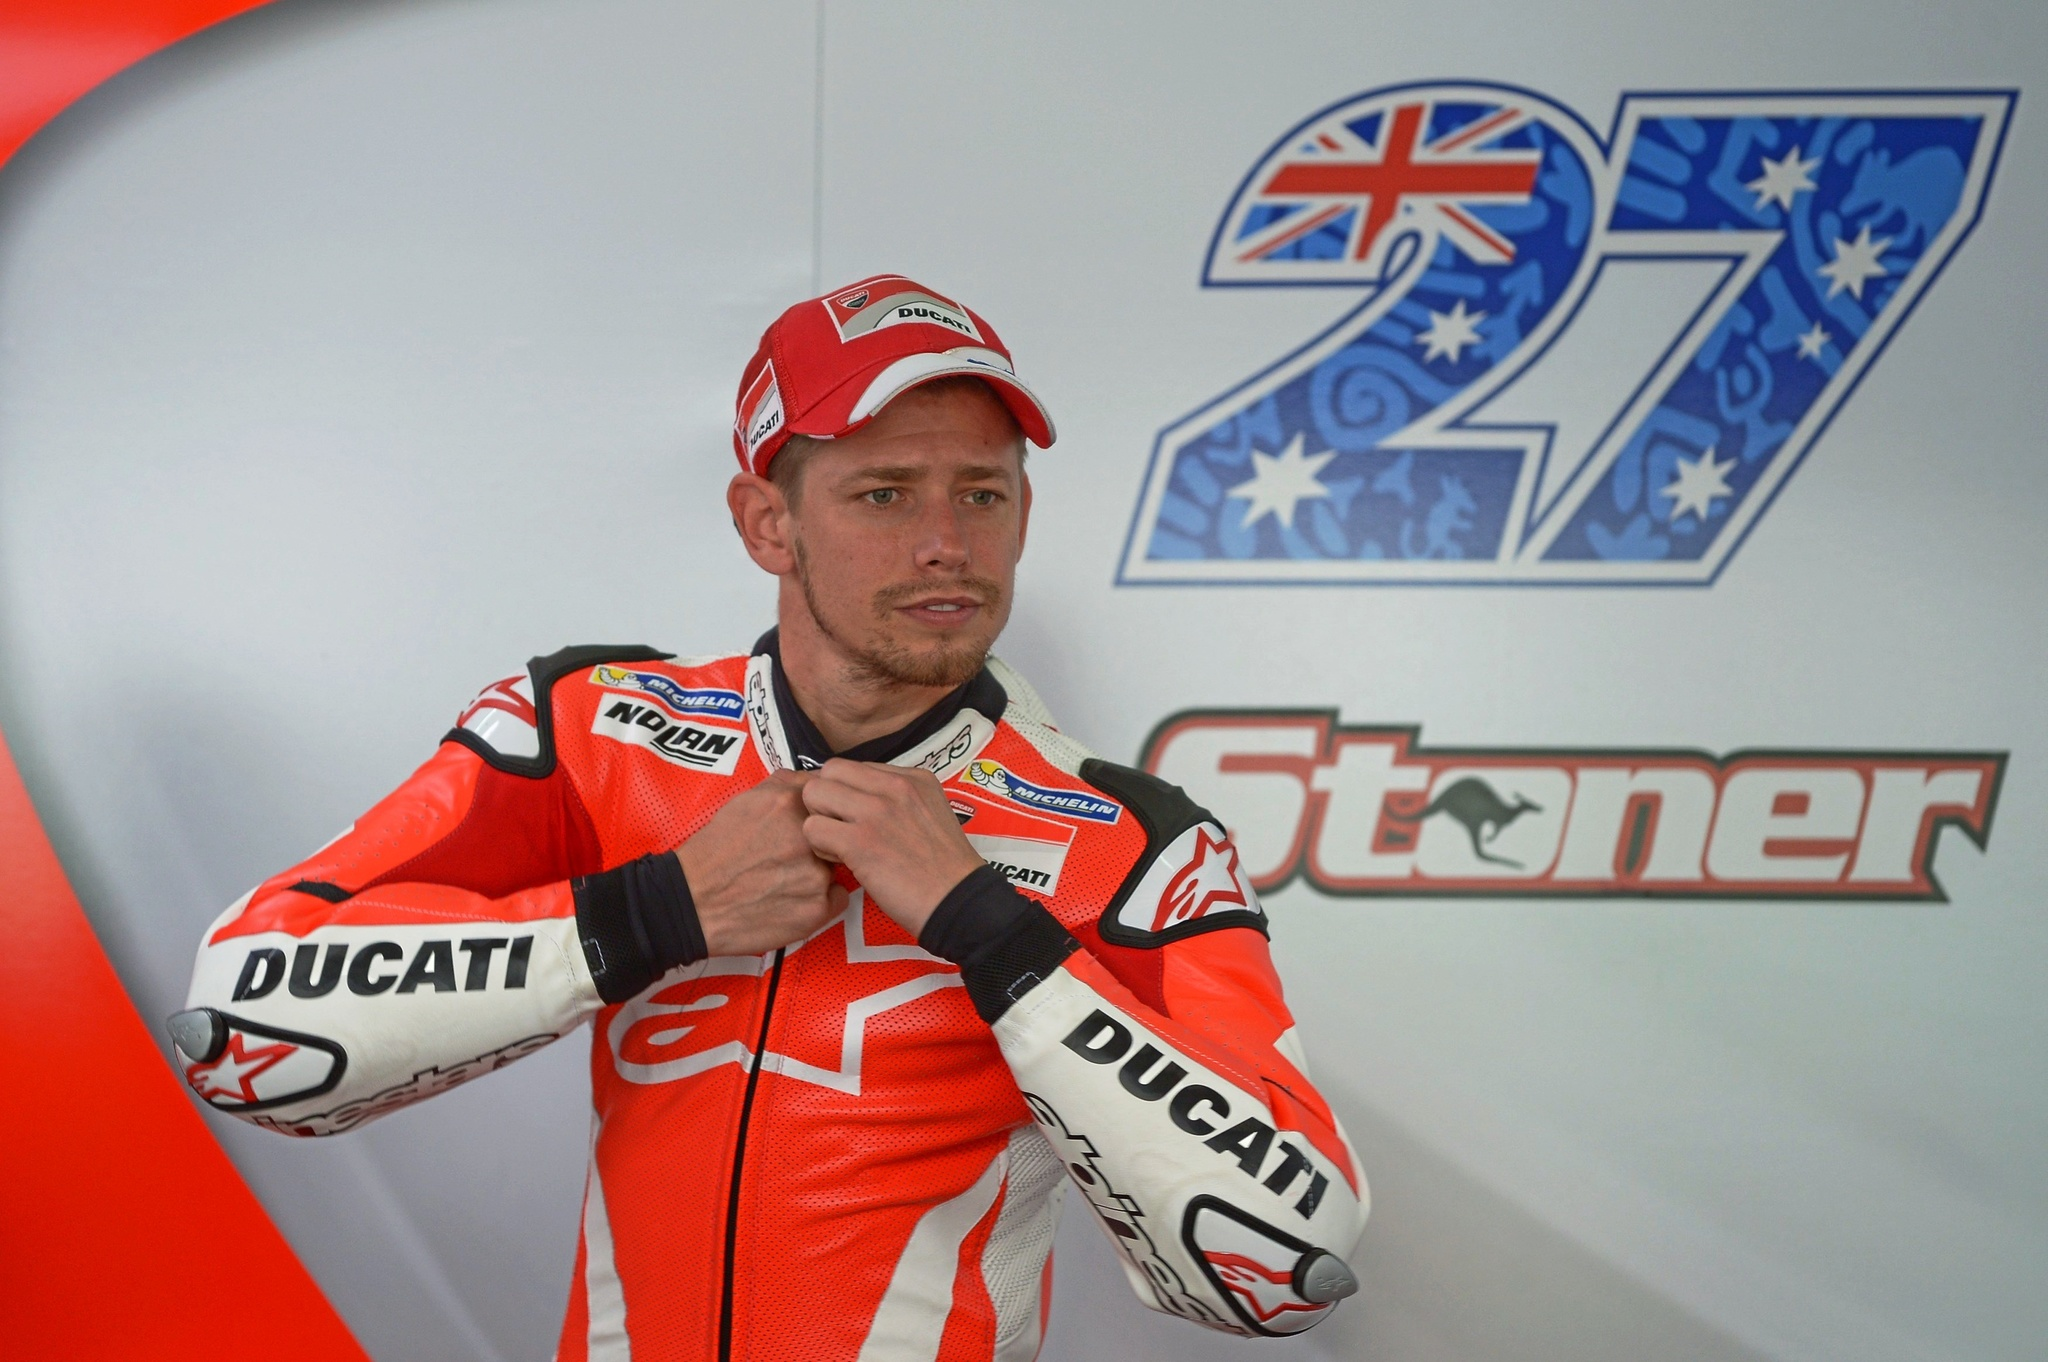 Ducati team test rider <HIT>Casey</HIT><HIT>Stoner</HIT> of Australia zips his racing suit before the second day of 2016 MotoGP pre-season test at the Sepang International circuit on February 2, 2016. AFP PHOTO / MOHD RASFAN